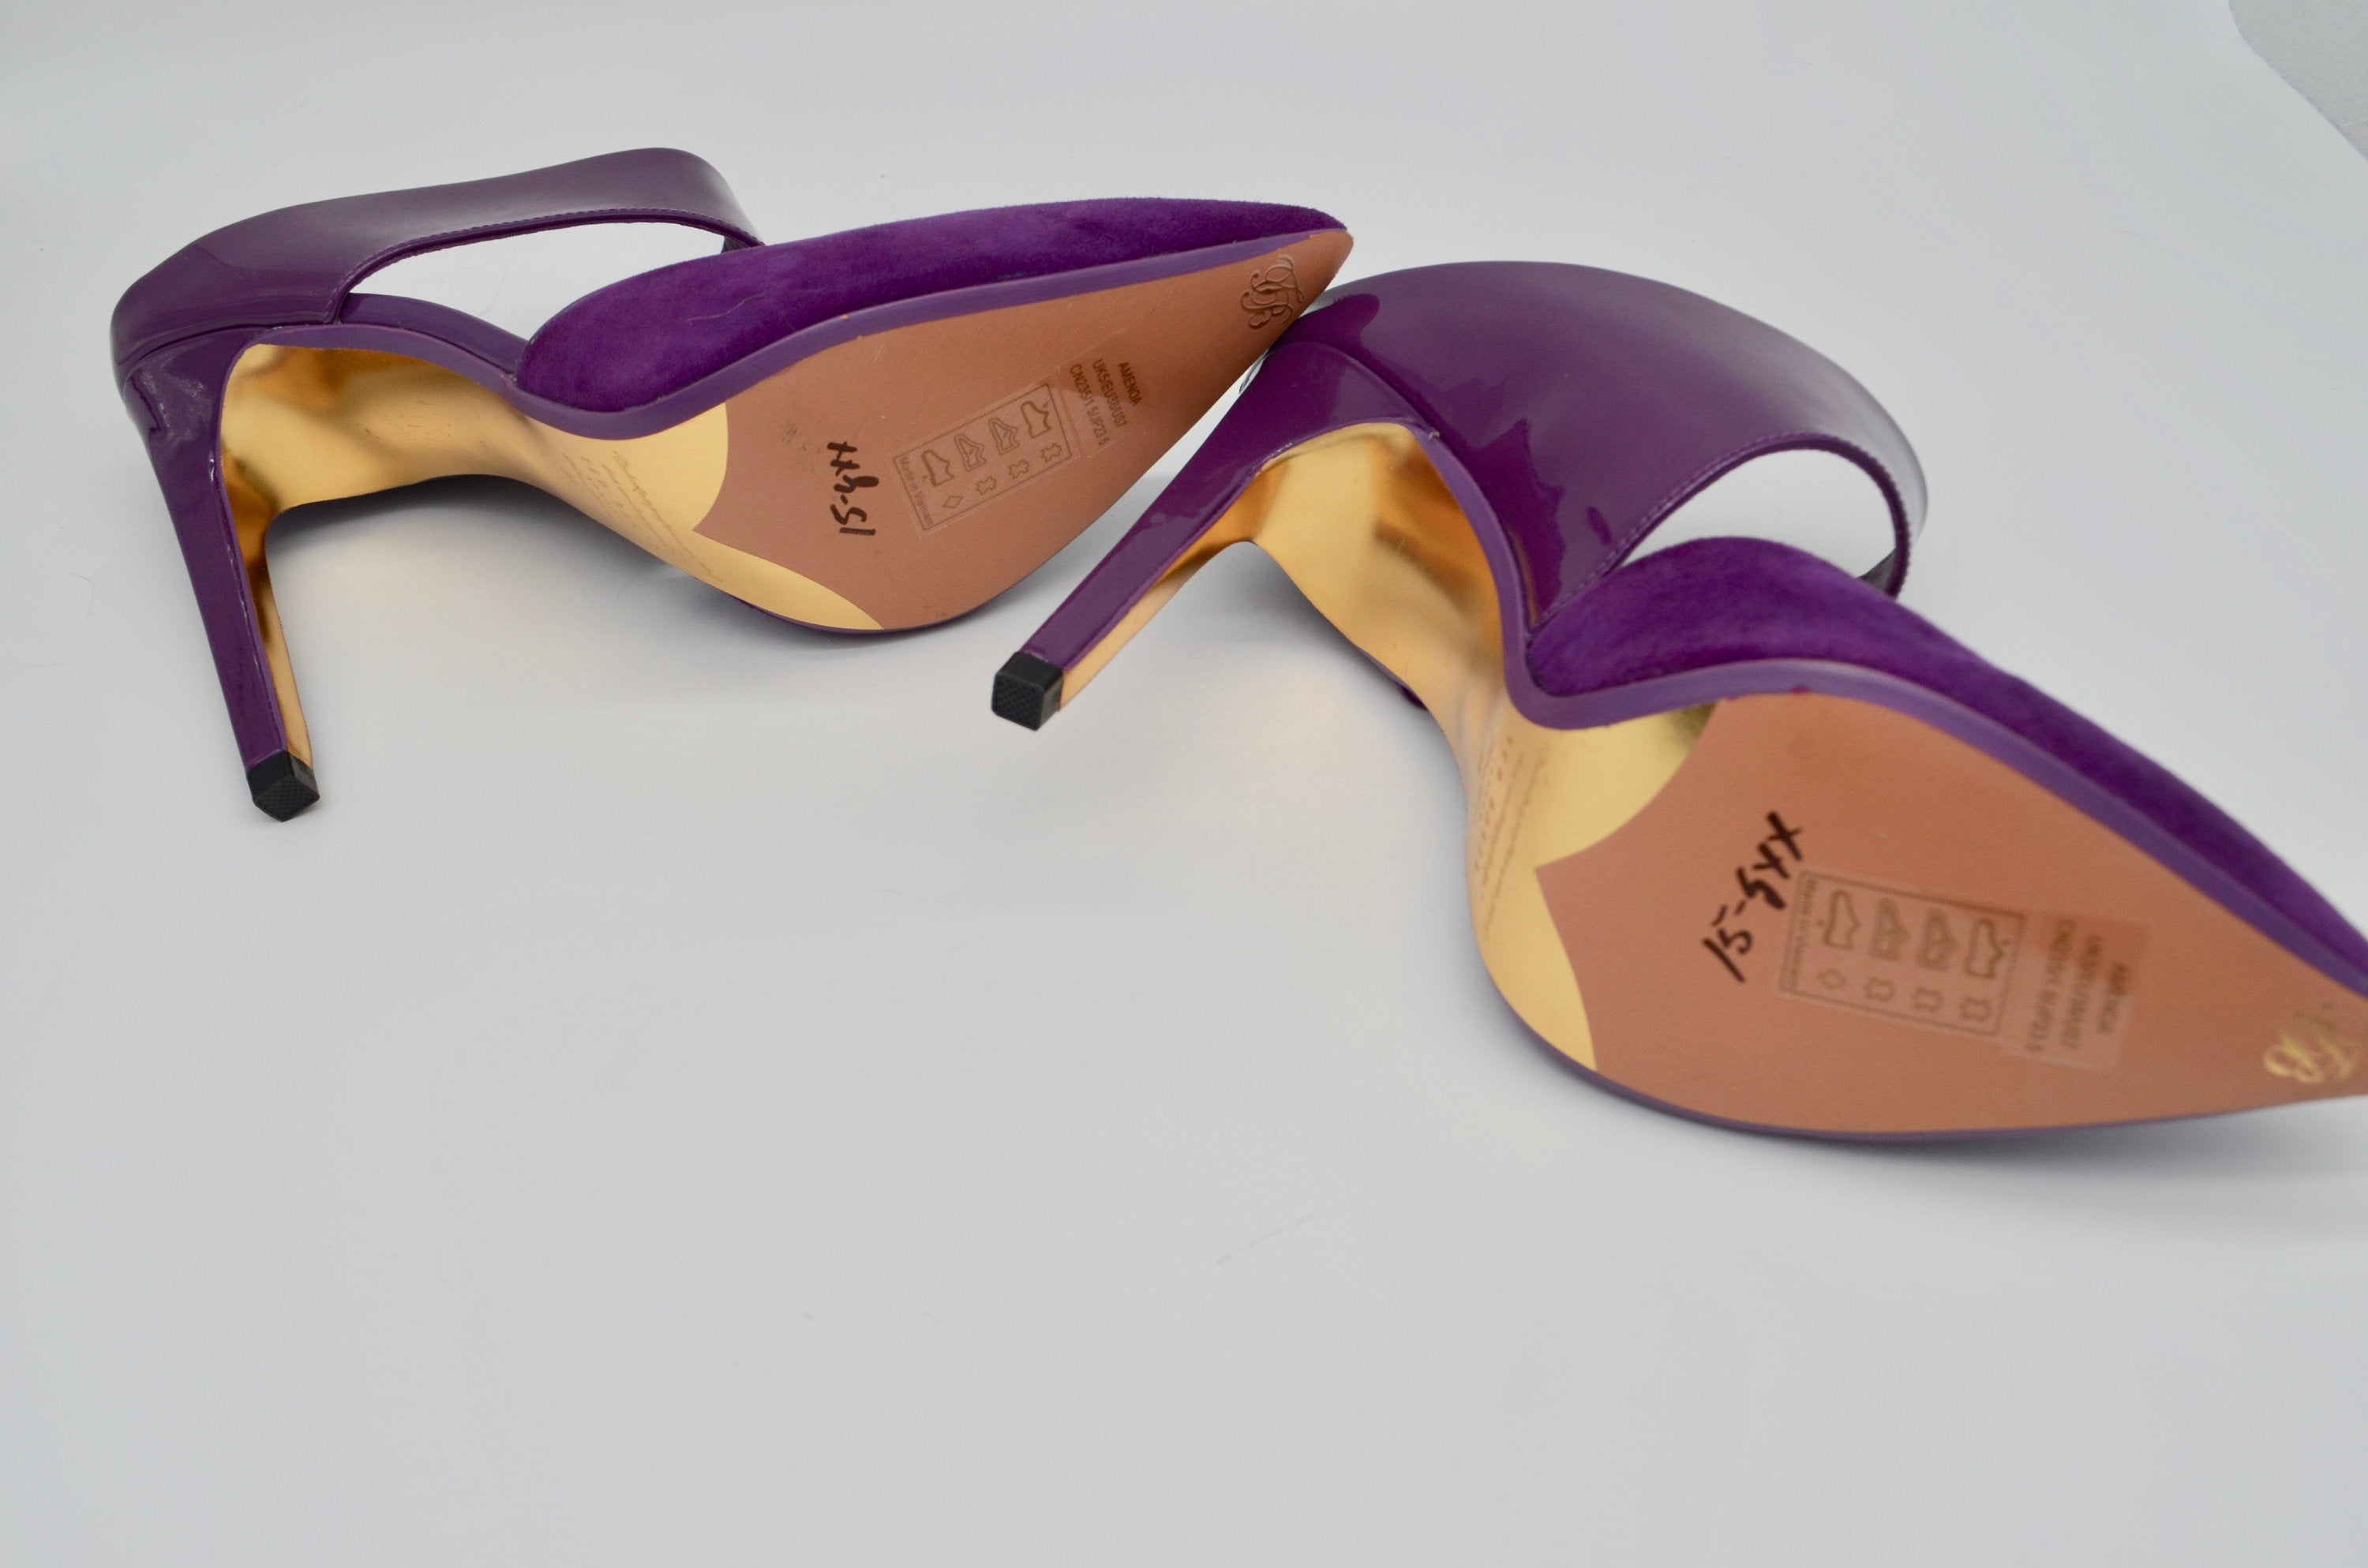 Ted Baker Purple Suede And Leather Dress Pumps High Heel Shoes Mule New Without Box